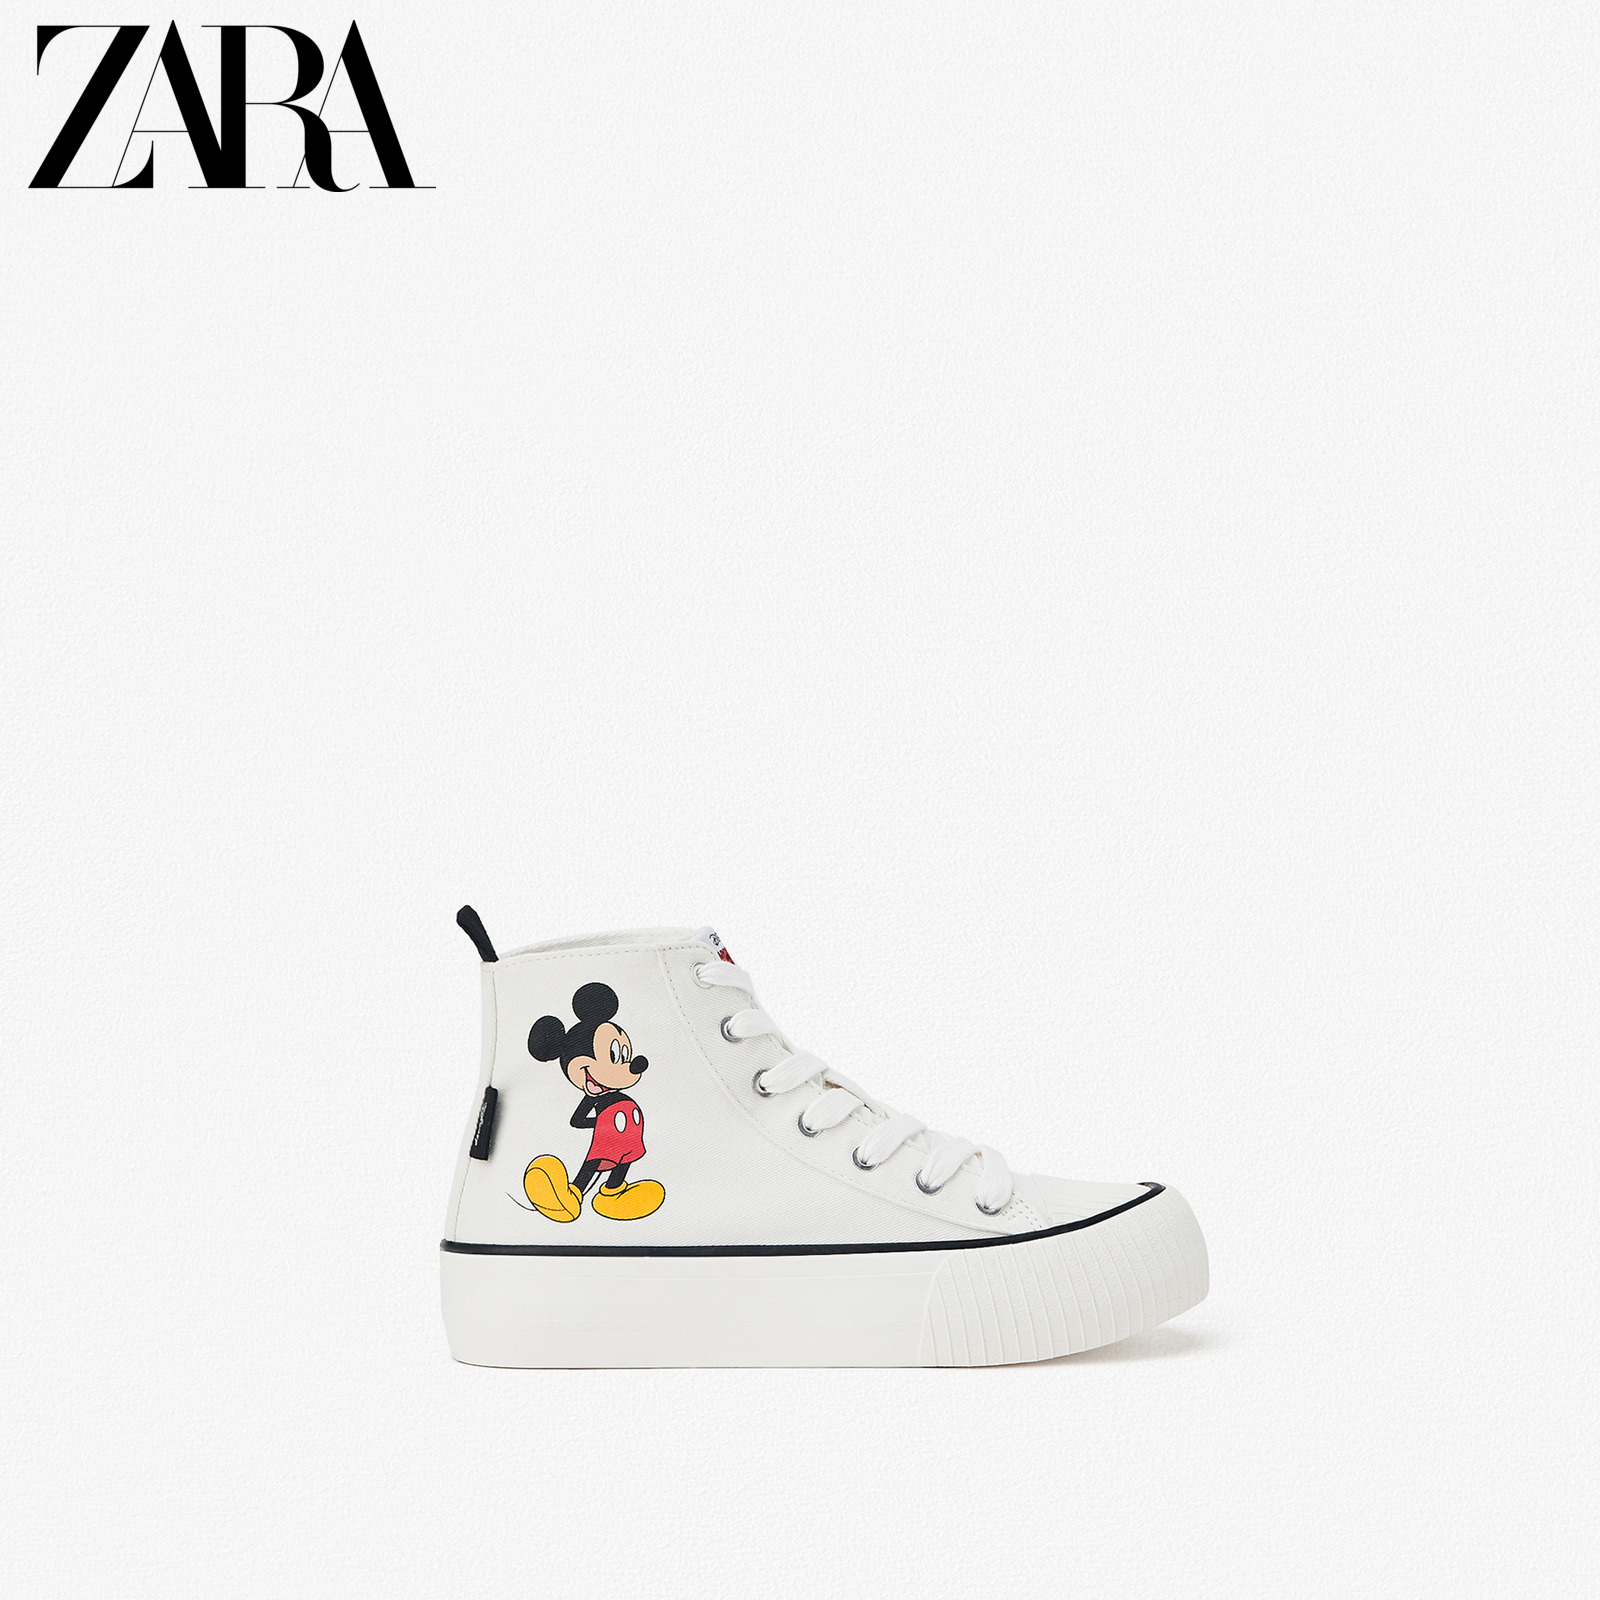 Zara new children's shoes Girls Disney Mickey Mouse print high top sneaker 12210530001